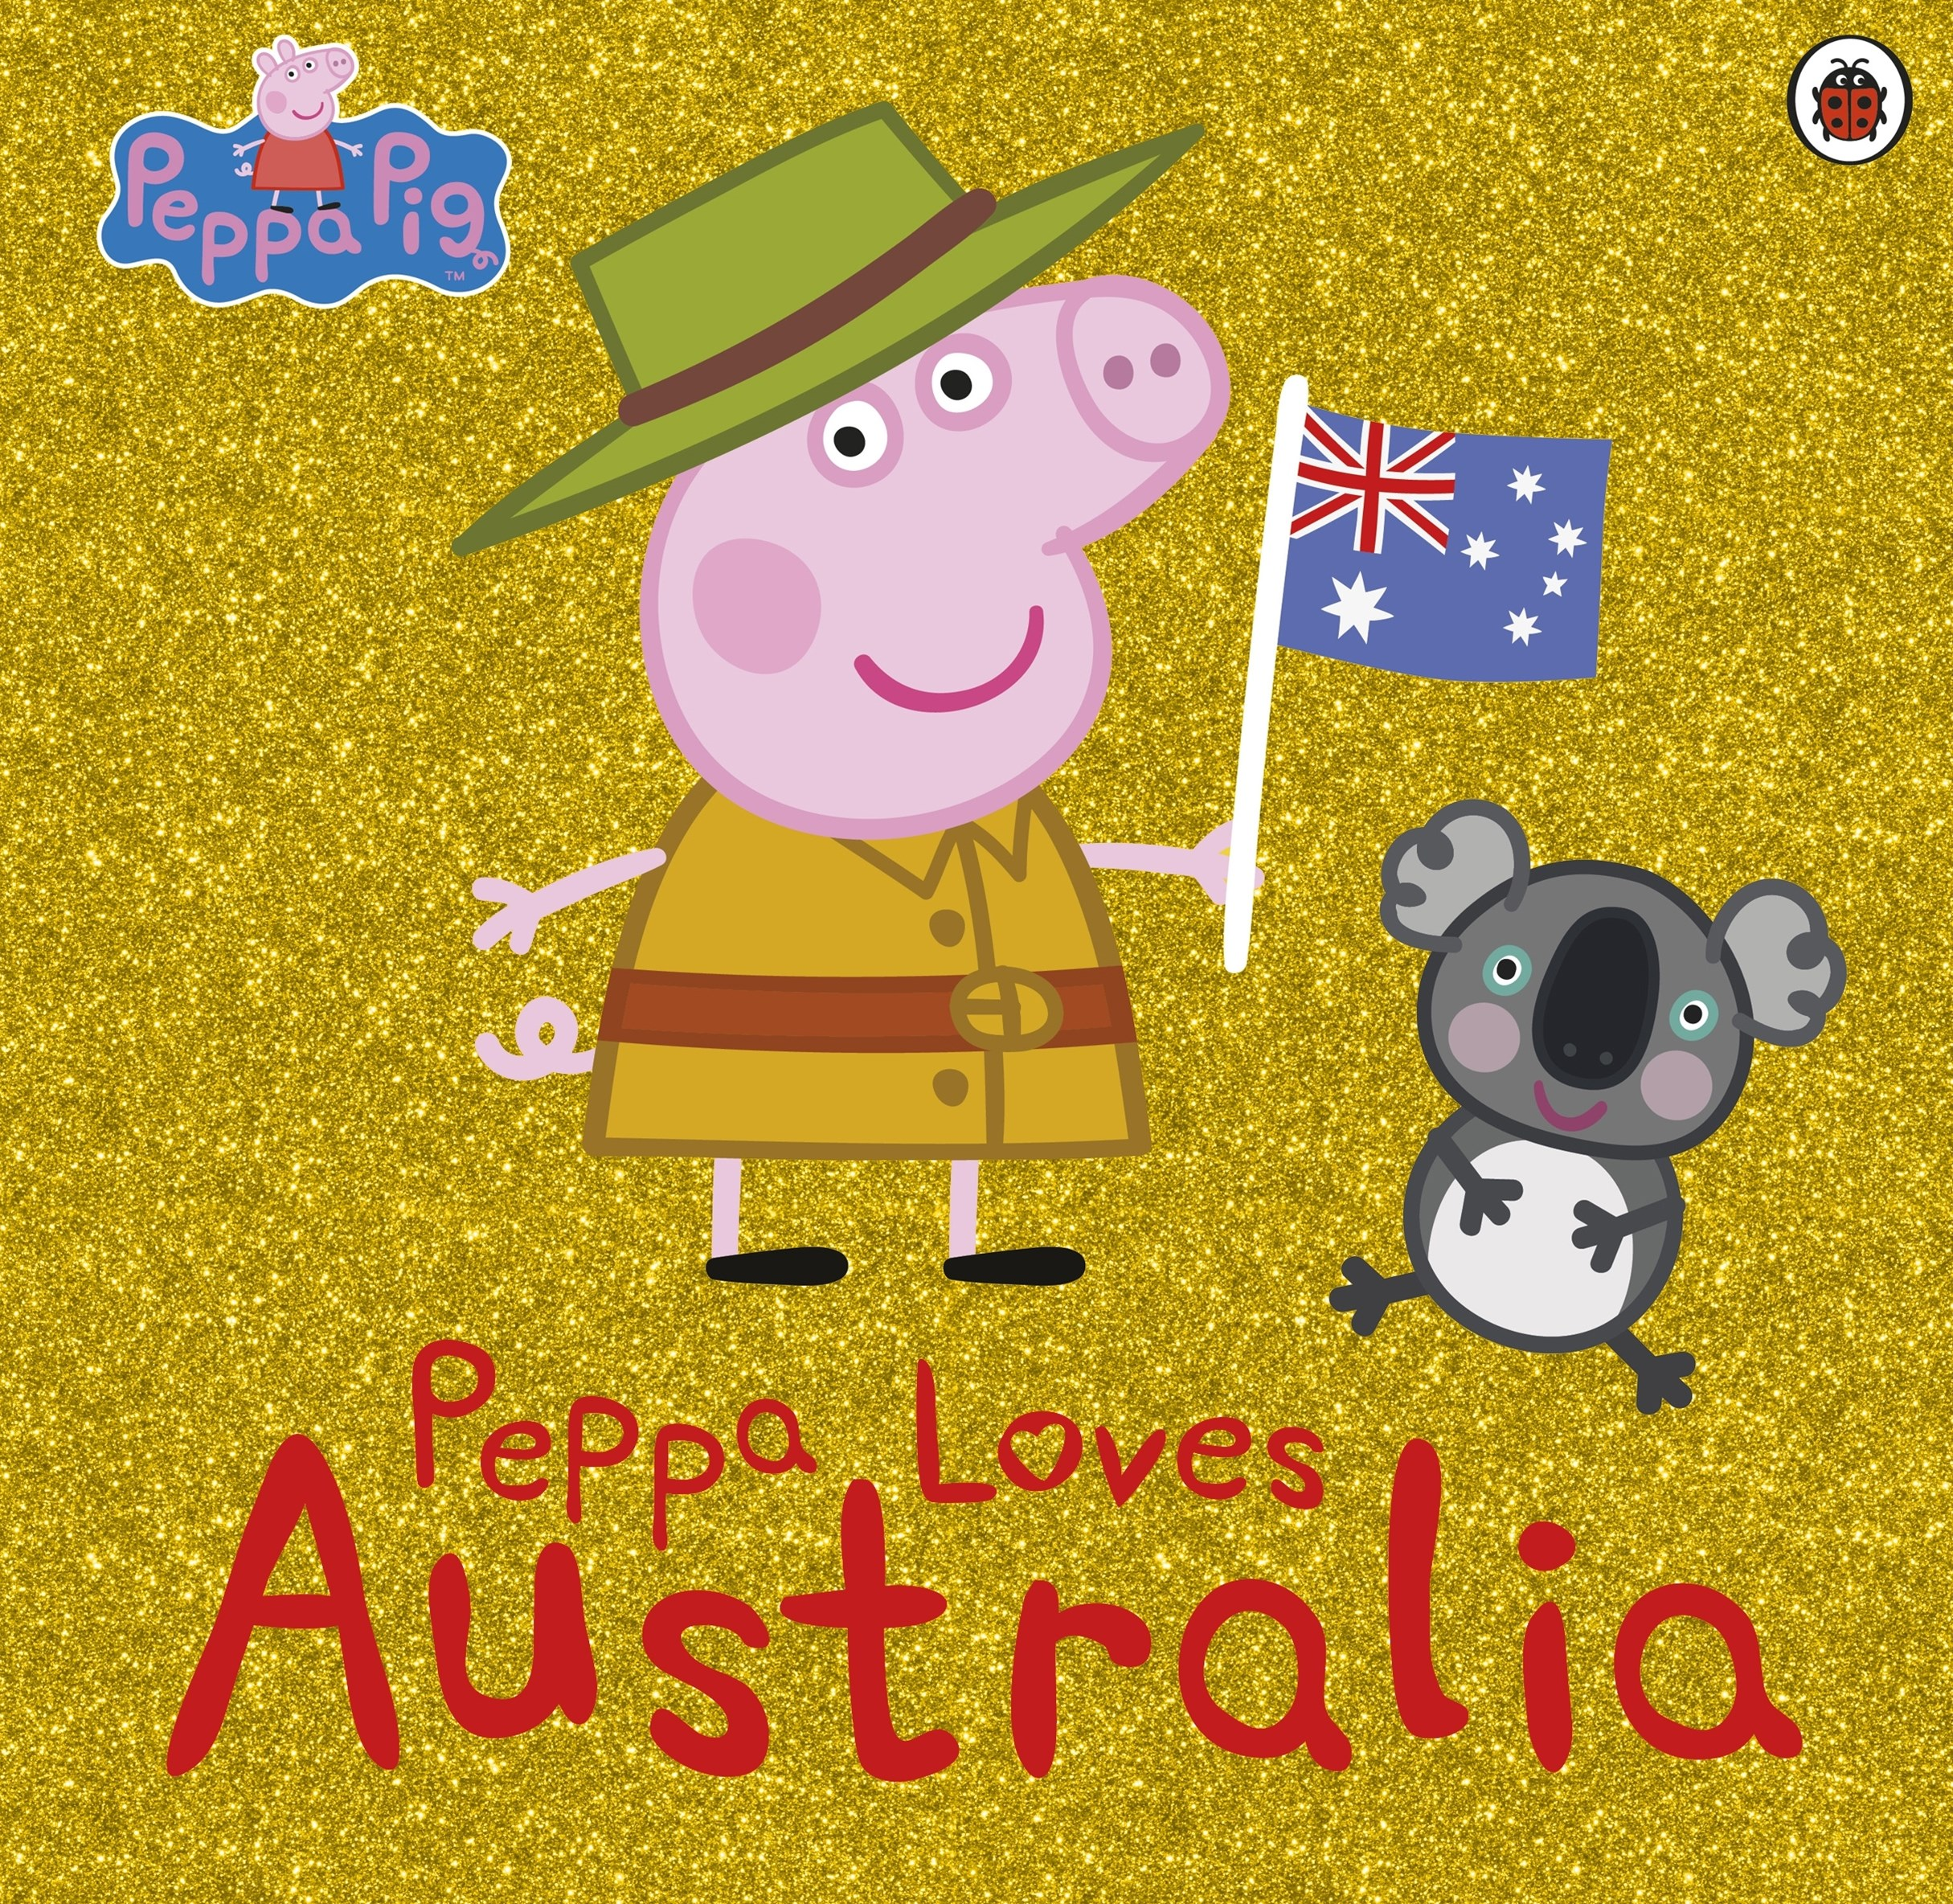 Peppa Pig: Peppa Loves Australia